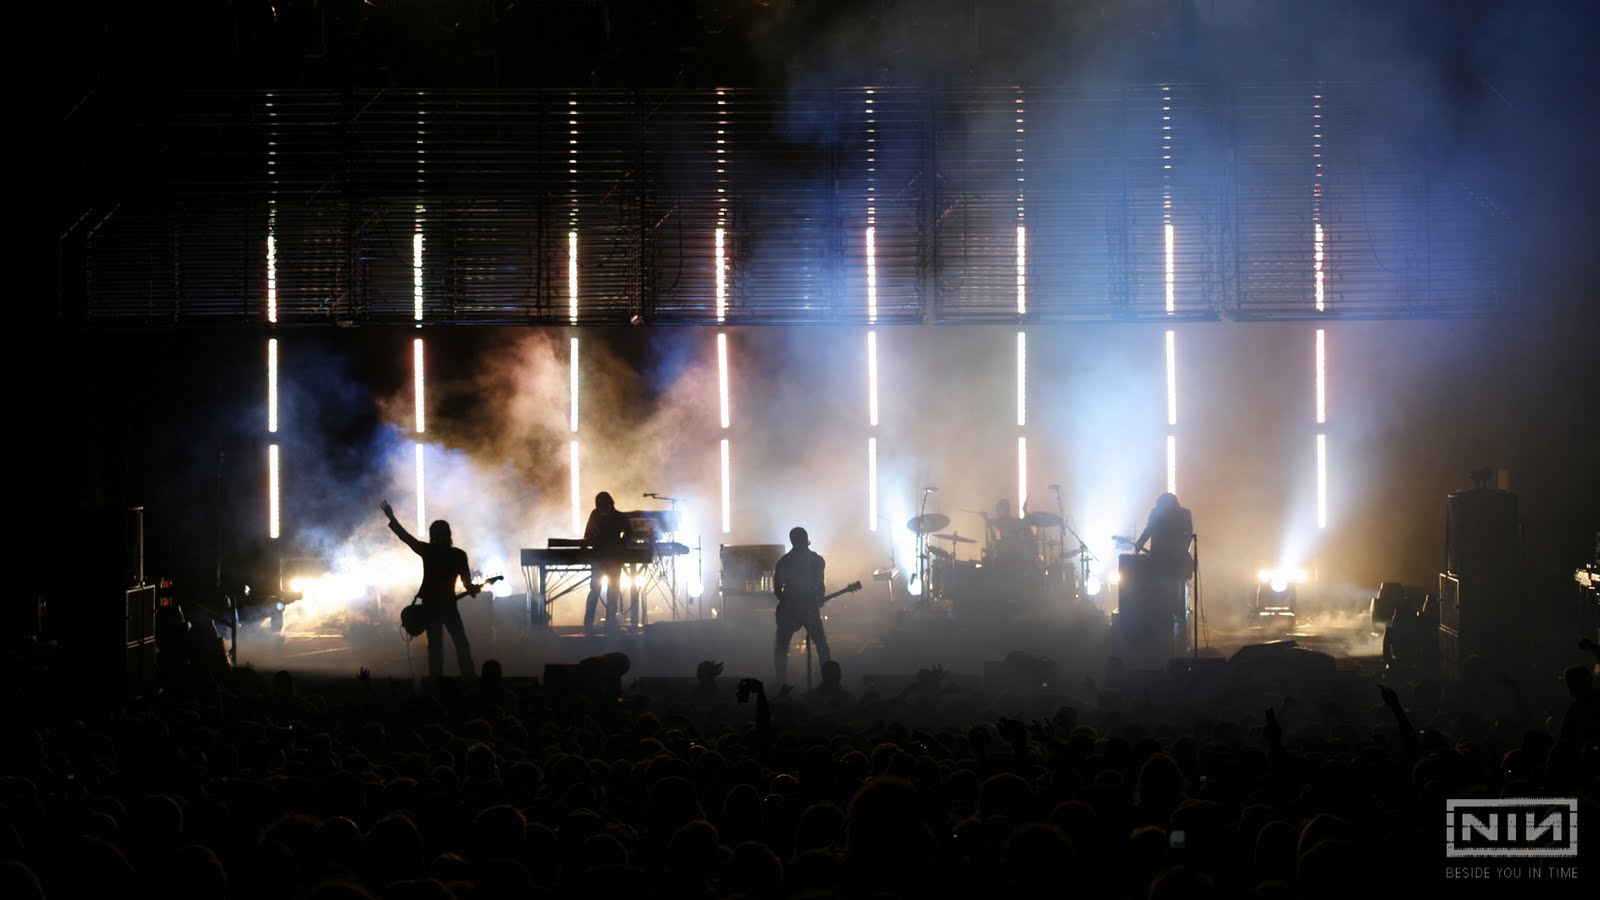 nine inch nails Nine inch nails, commonly abbreviated as nin (stylized as niи), is an american industrial rock band founded in 1988 by trent reznor in cleveland, ohio.